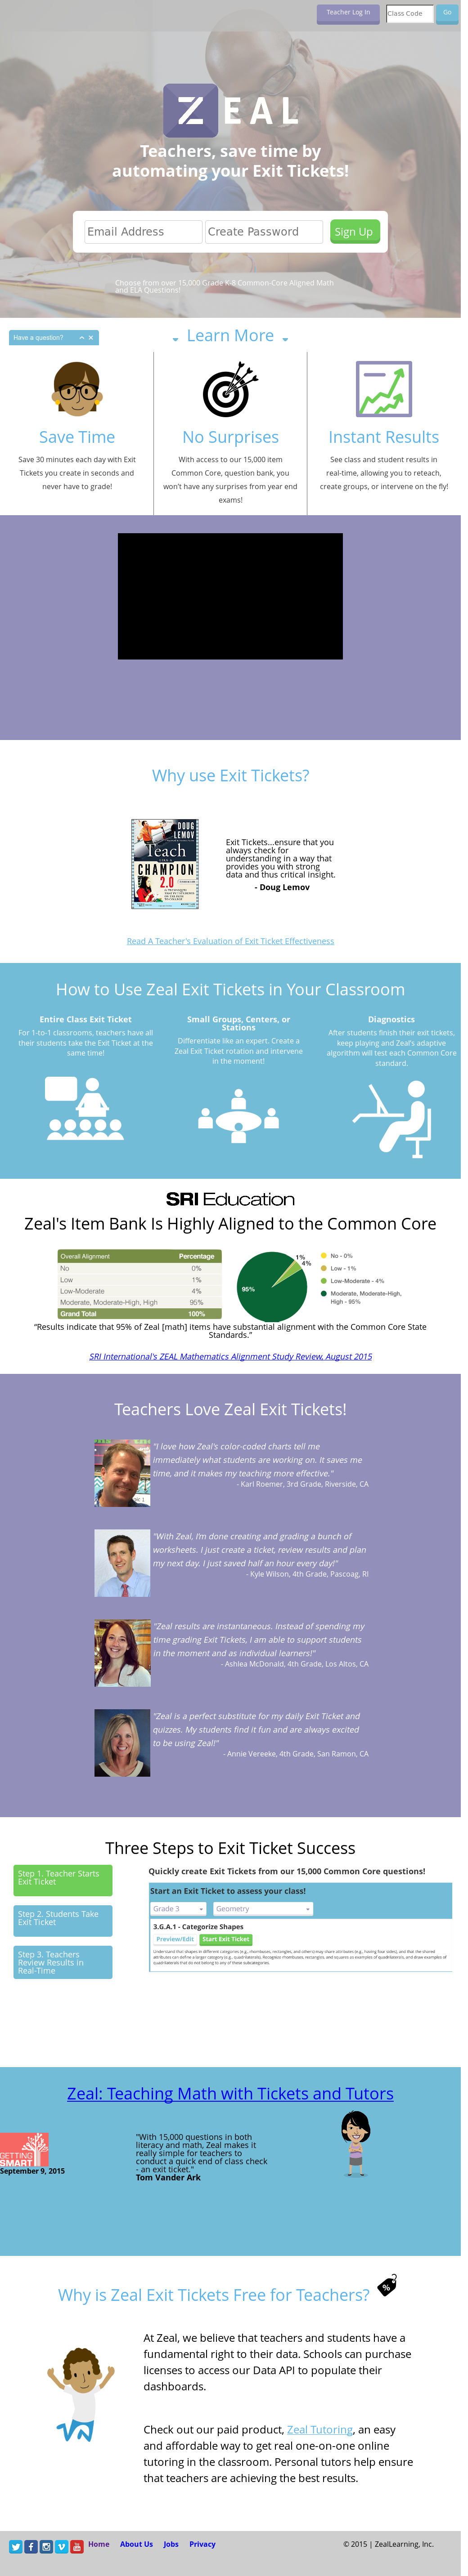 Zeal Learning Competitors, Revenue and Employees - Owler Company Profile